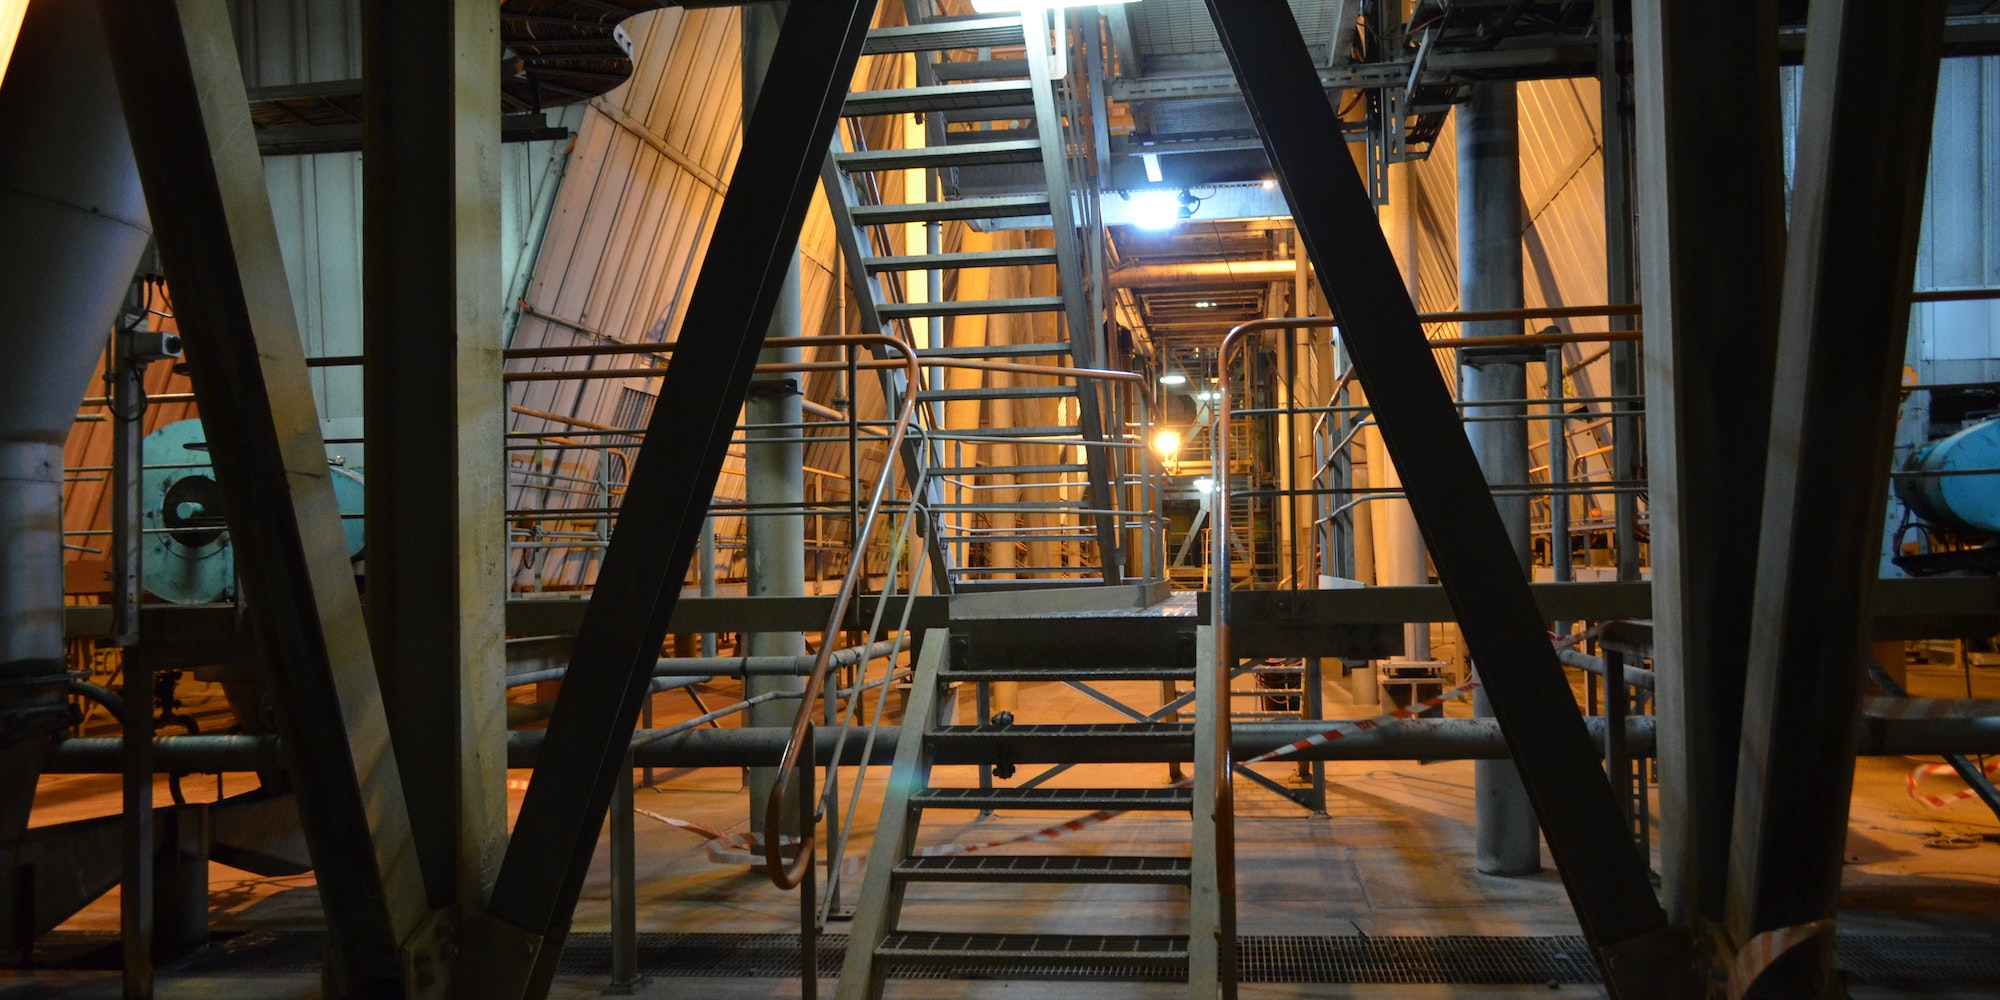 Tunnel Ray LED Tunnel / Low Profile Light in application, installed on a stairwell on a  power station